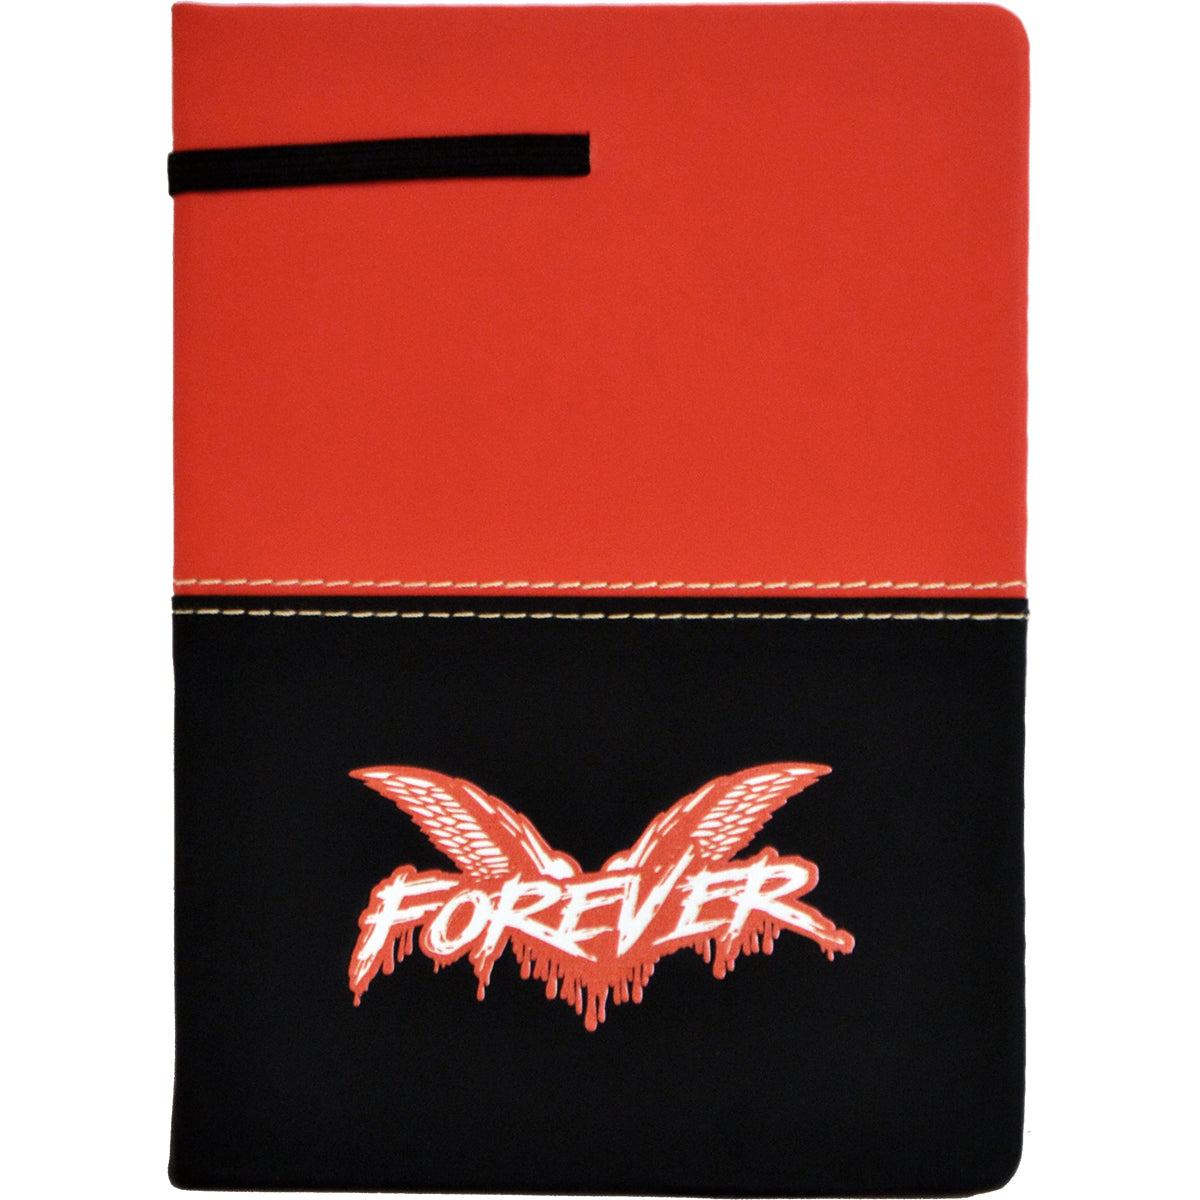 Cock Sparrer - Forever - Journal